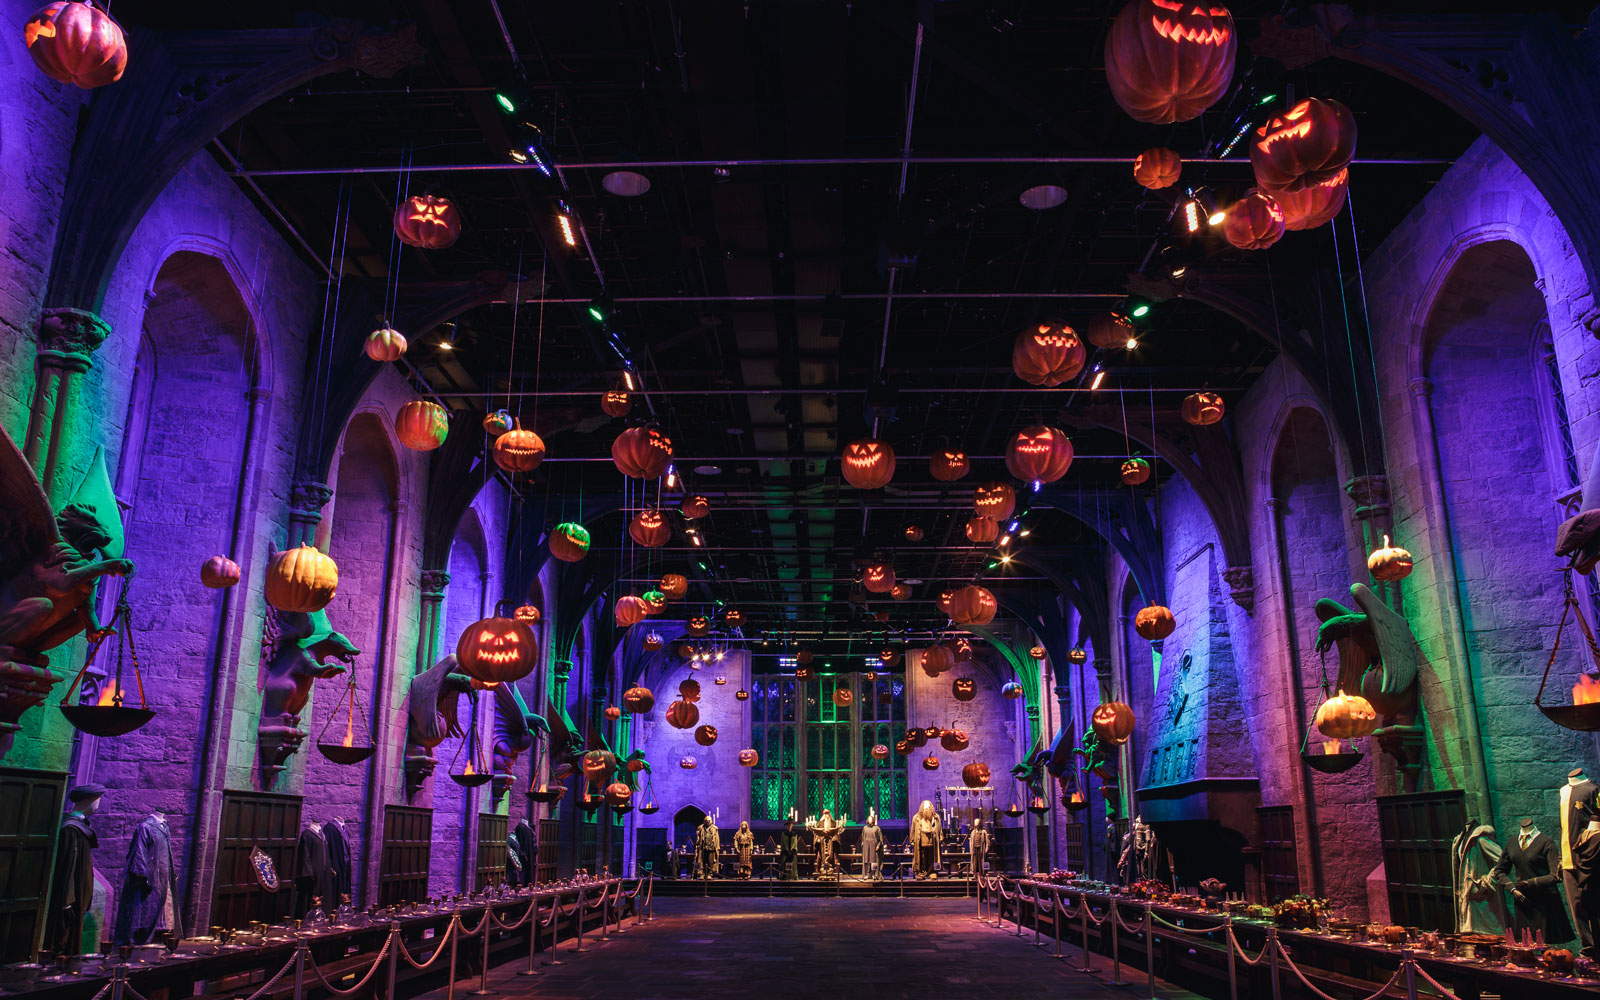 Step inside the Great Hall set used for filming during the movies to enjoy a two-course dinner and drinks as part of a special Halloween celebration.